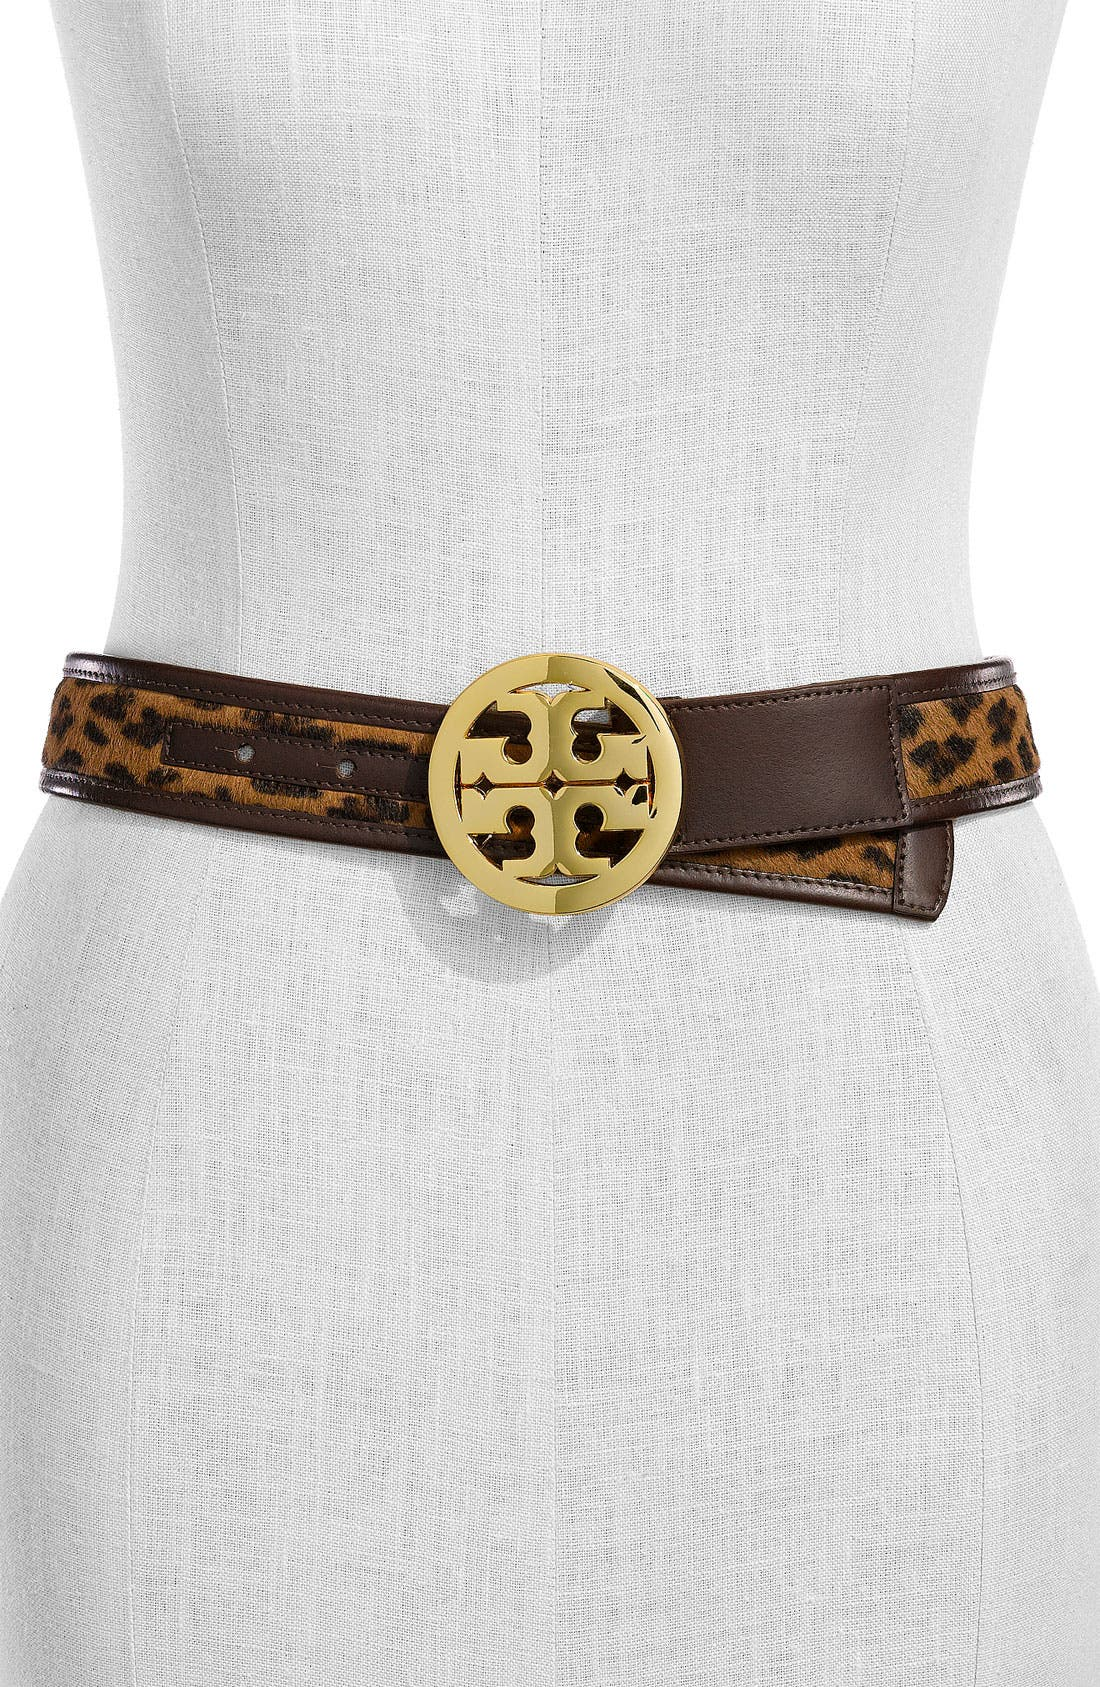 Main Image - Tory Burch 'Logo' Leather Belt